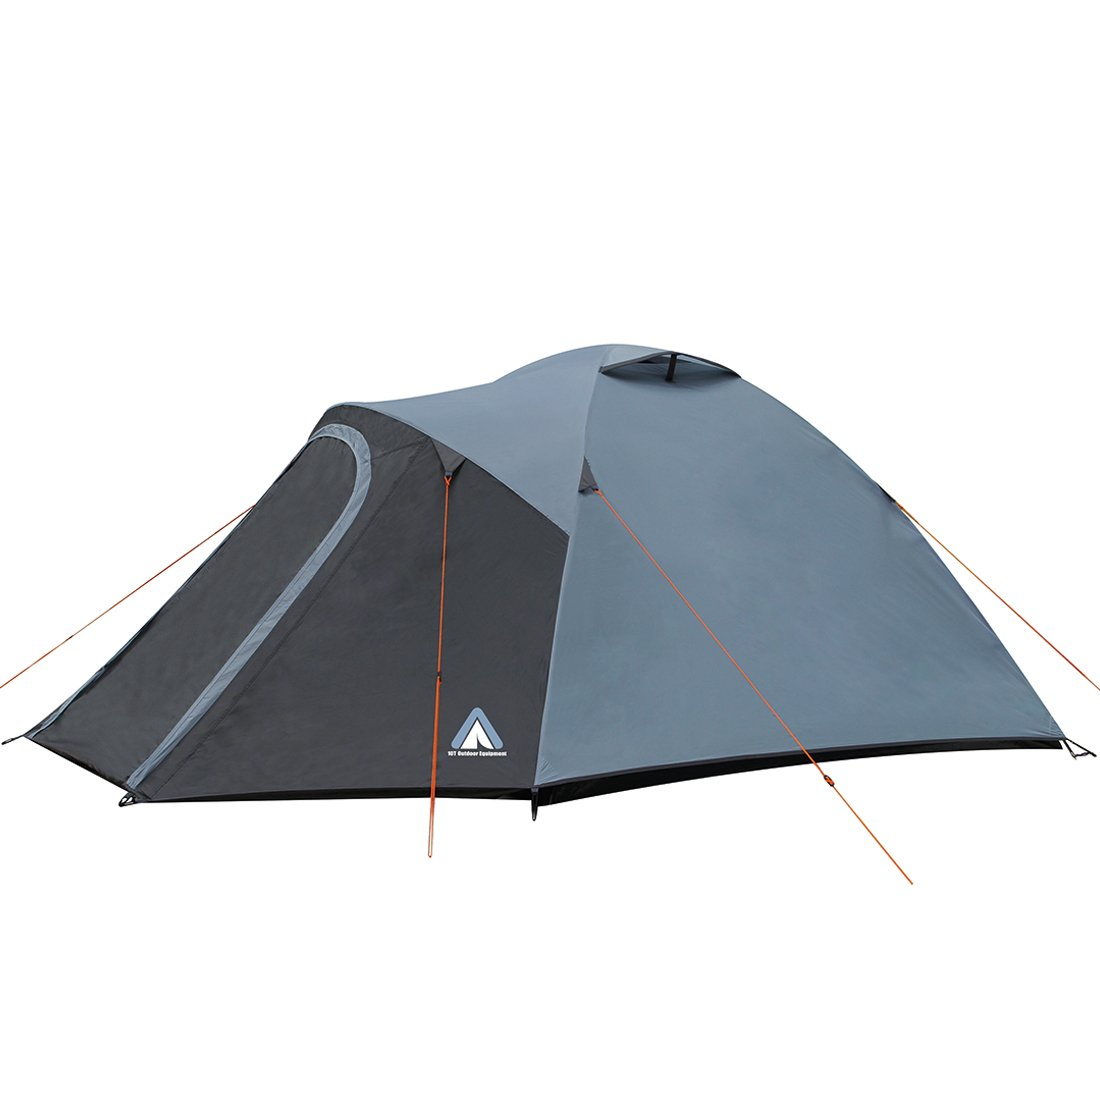 10T Outdoor Equipment Glasgow 5 Zelt, Blau, 340 x 320 x 180 cm